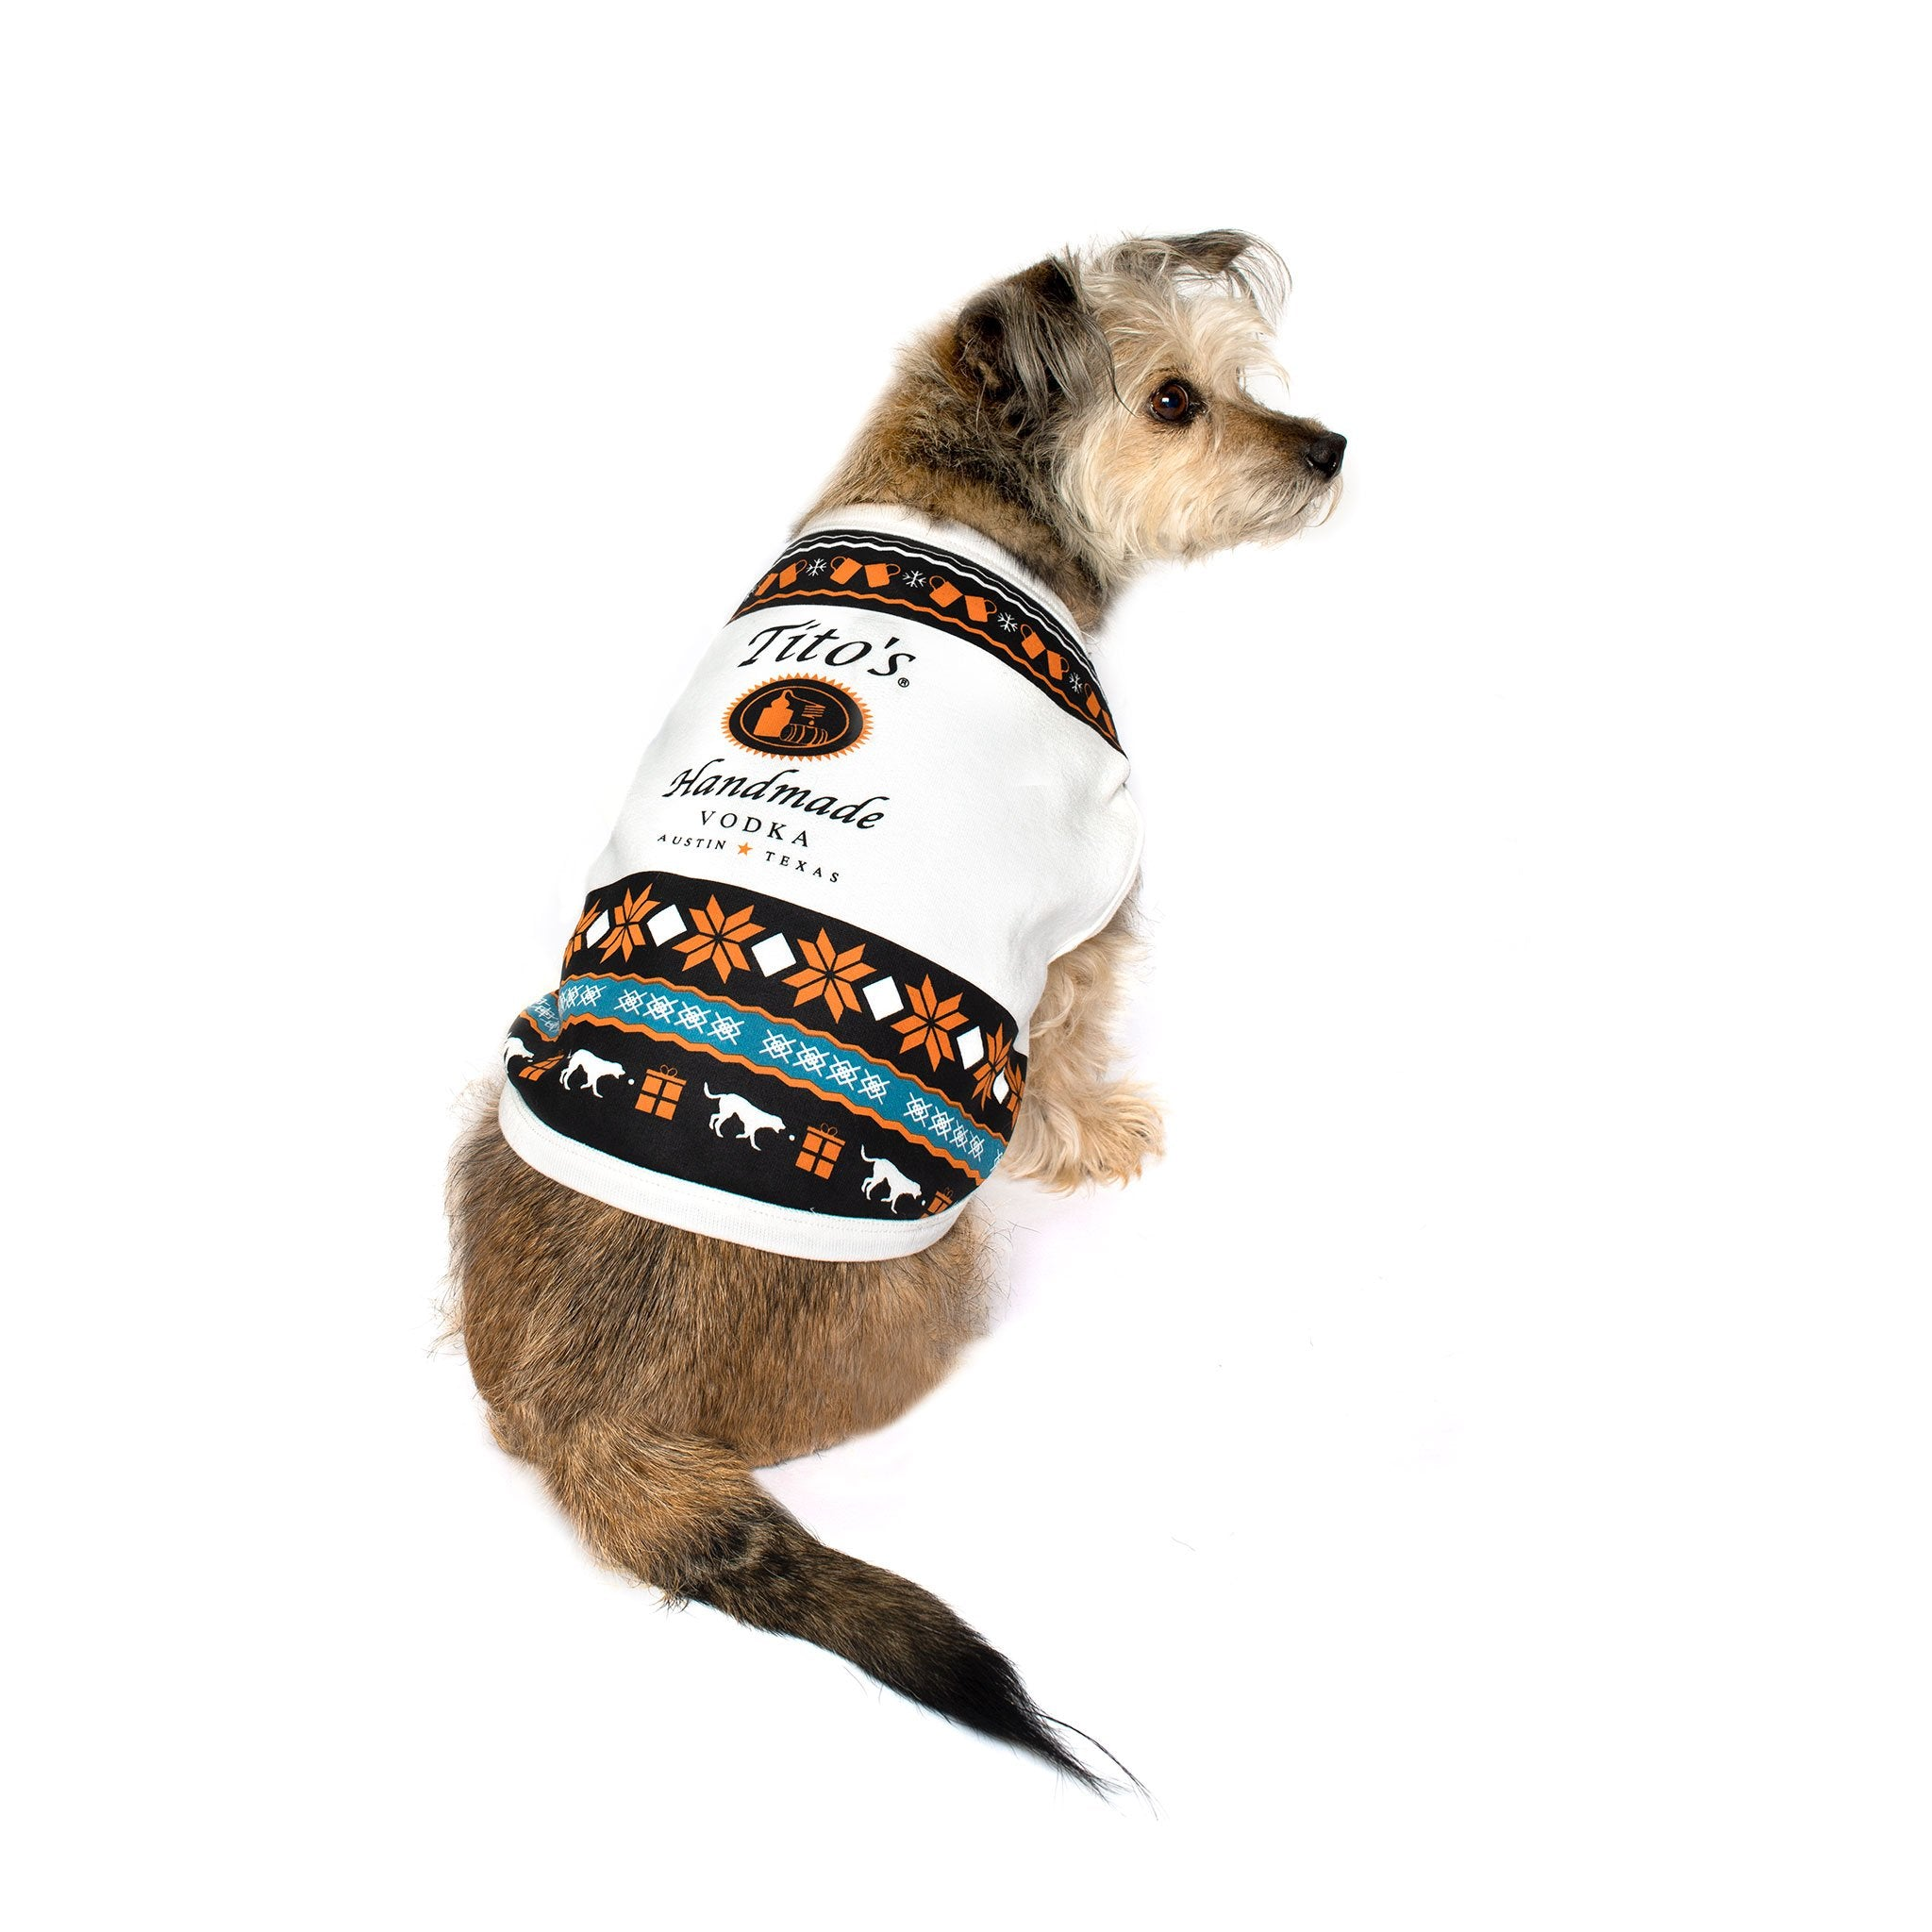 Dog wearing Tito's Ugly Dog Sweater featuring orange, blue and white holiday designs of snowflakes, dogs, and copper mugs